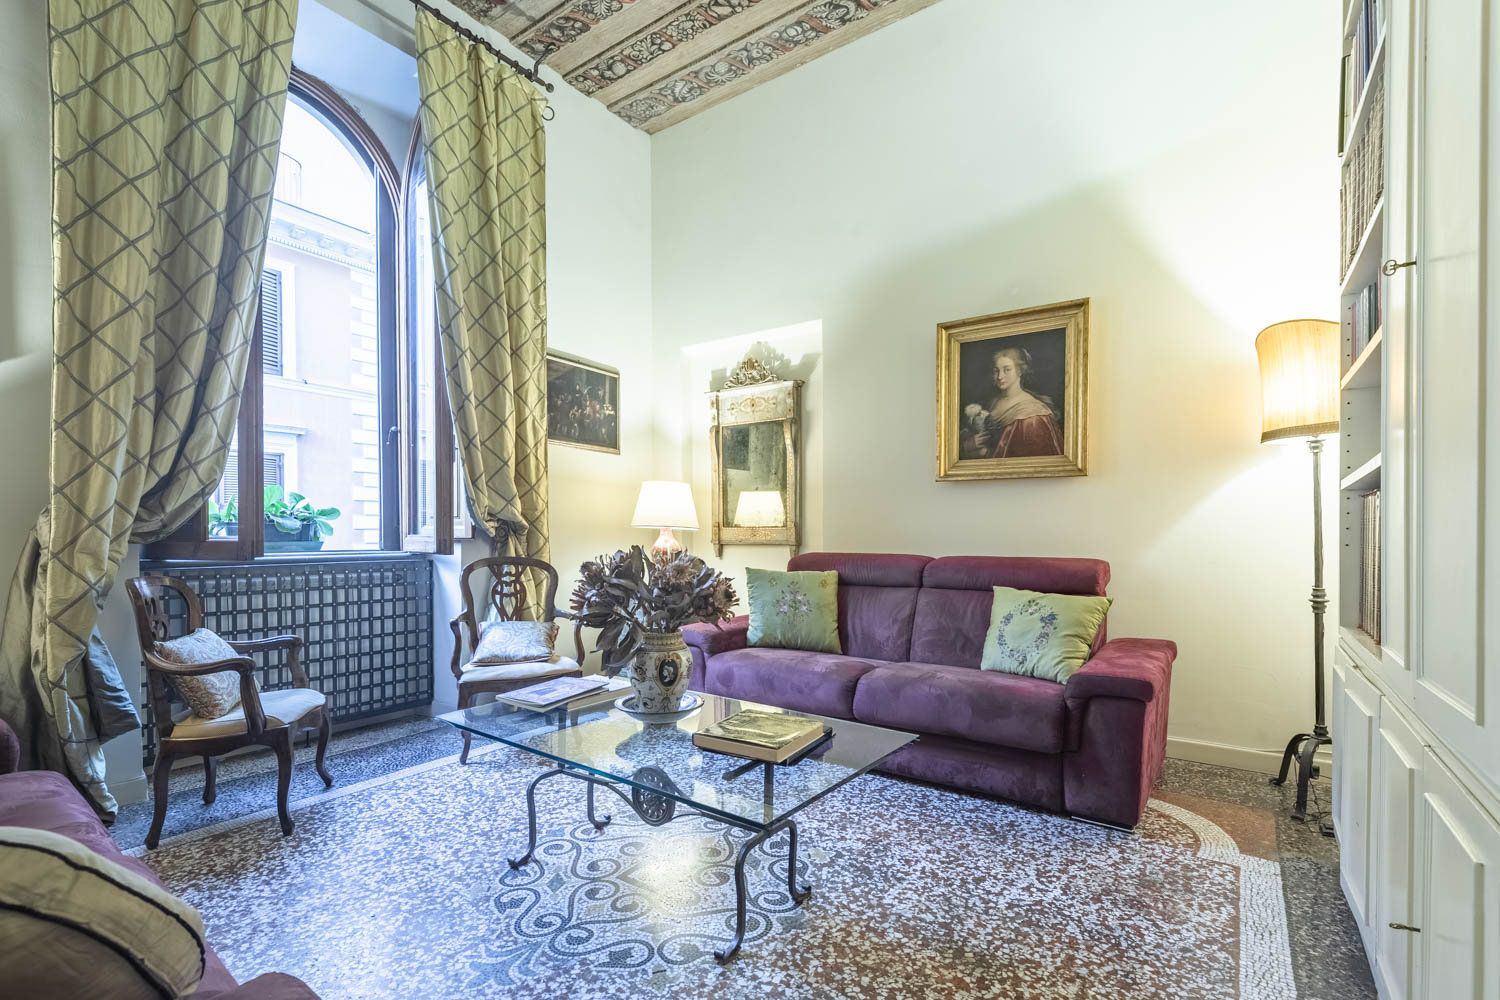 Apartment for Sale Rione Monti Roma: 115 square meters in the heart of the capital